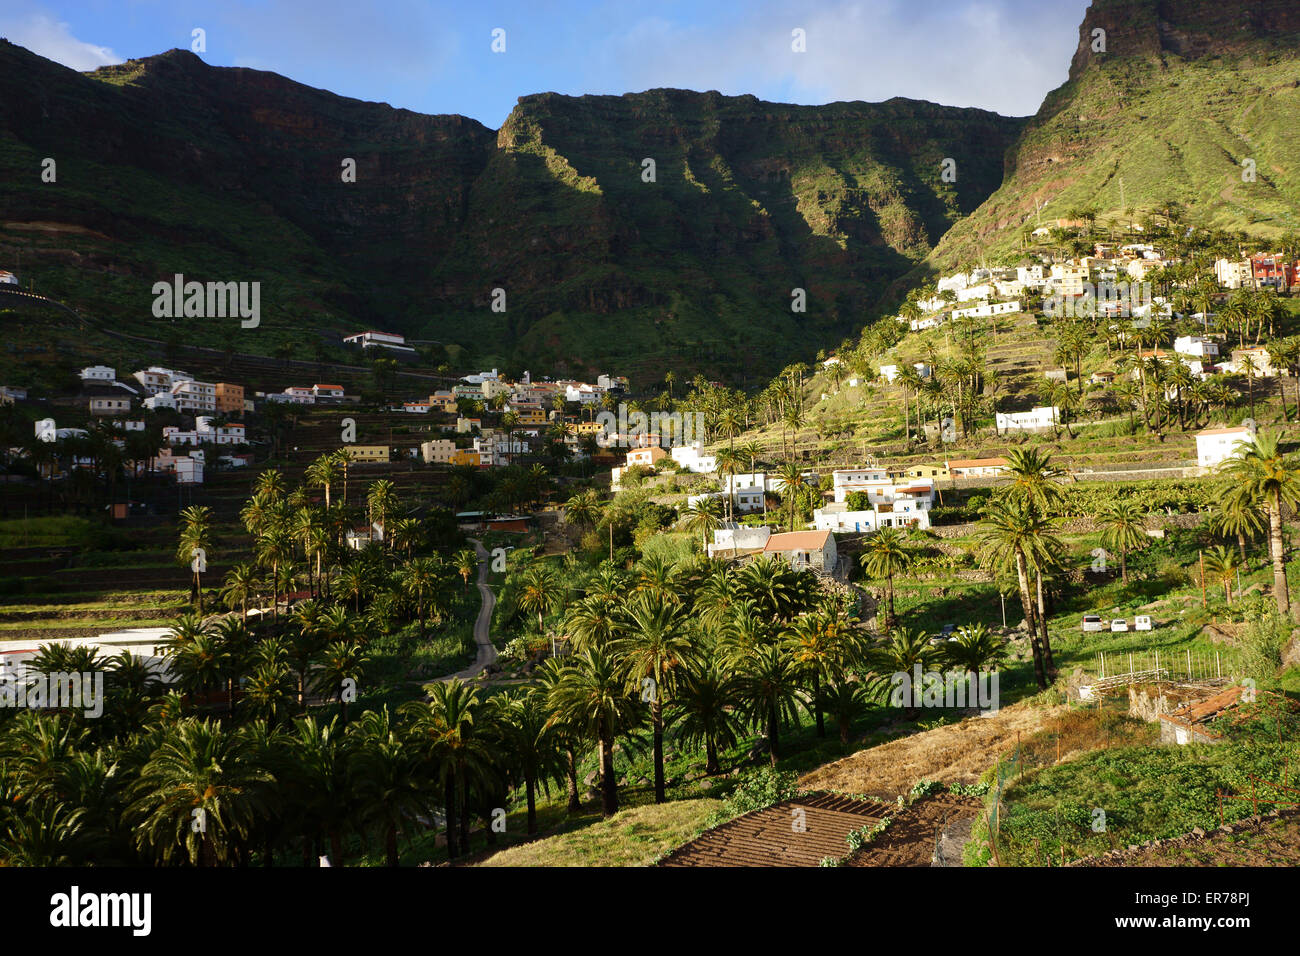 Upper Valle Gran Rey with town Higuera del Llano, island La Gomera, Canary islands, Spain - Stock Image